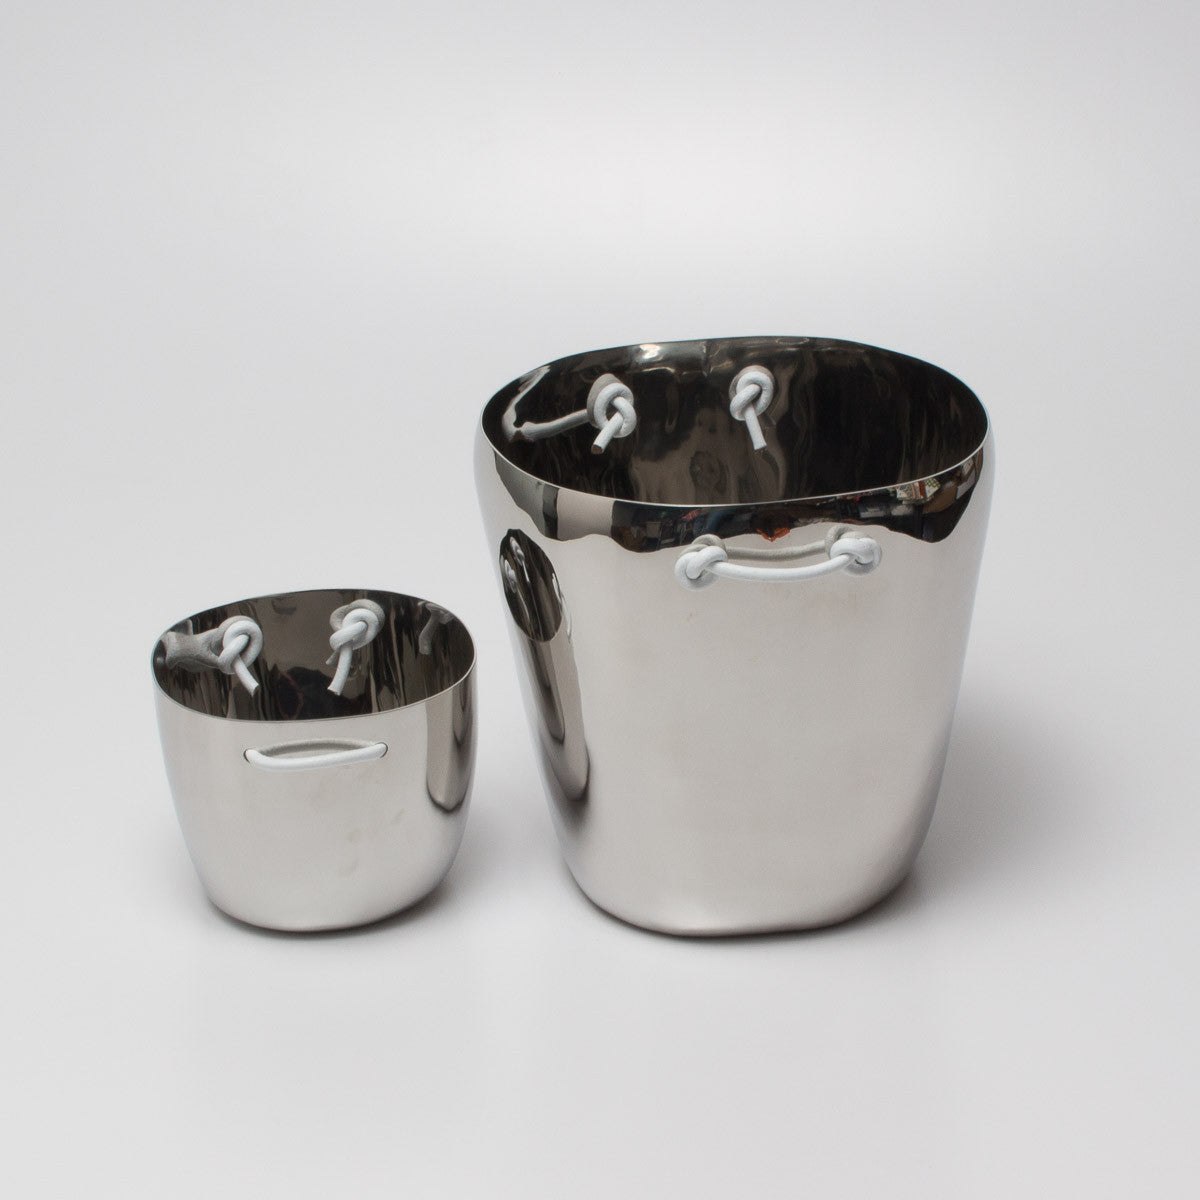 Stainless Steel Ice Bucket with Leather Handles